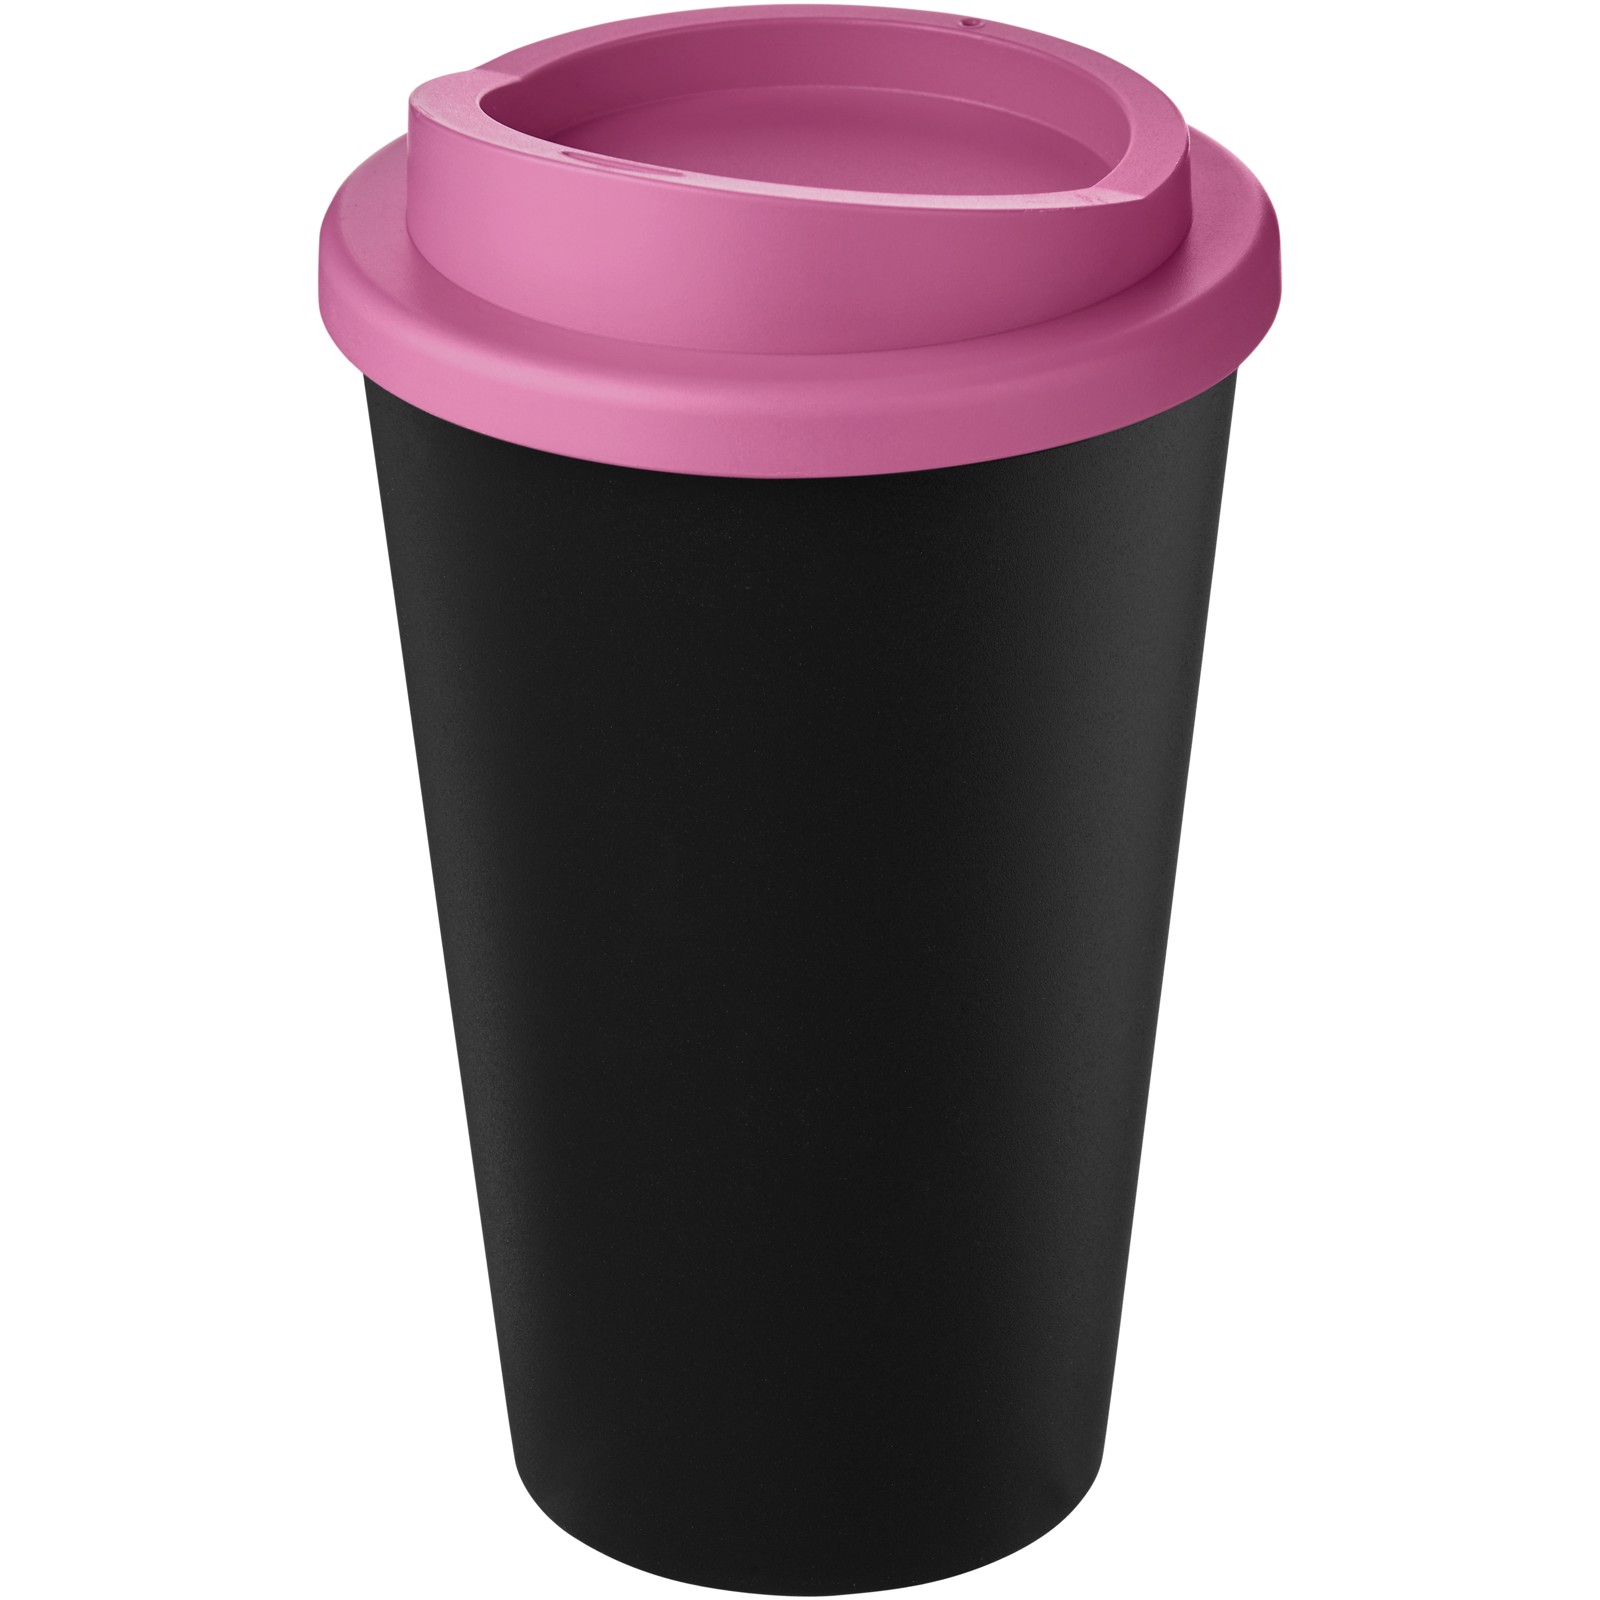 Americano Eco 350 ml recycled tumbler - Solid Black / Pink